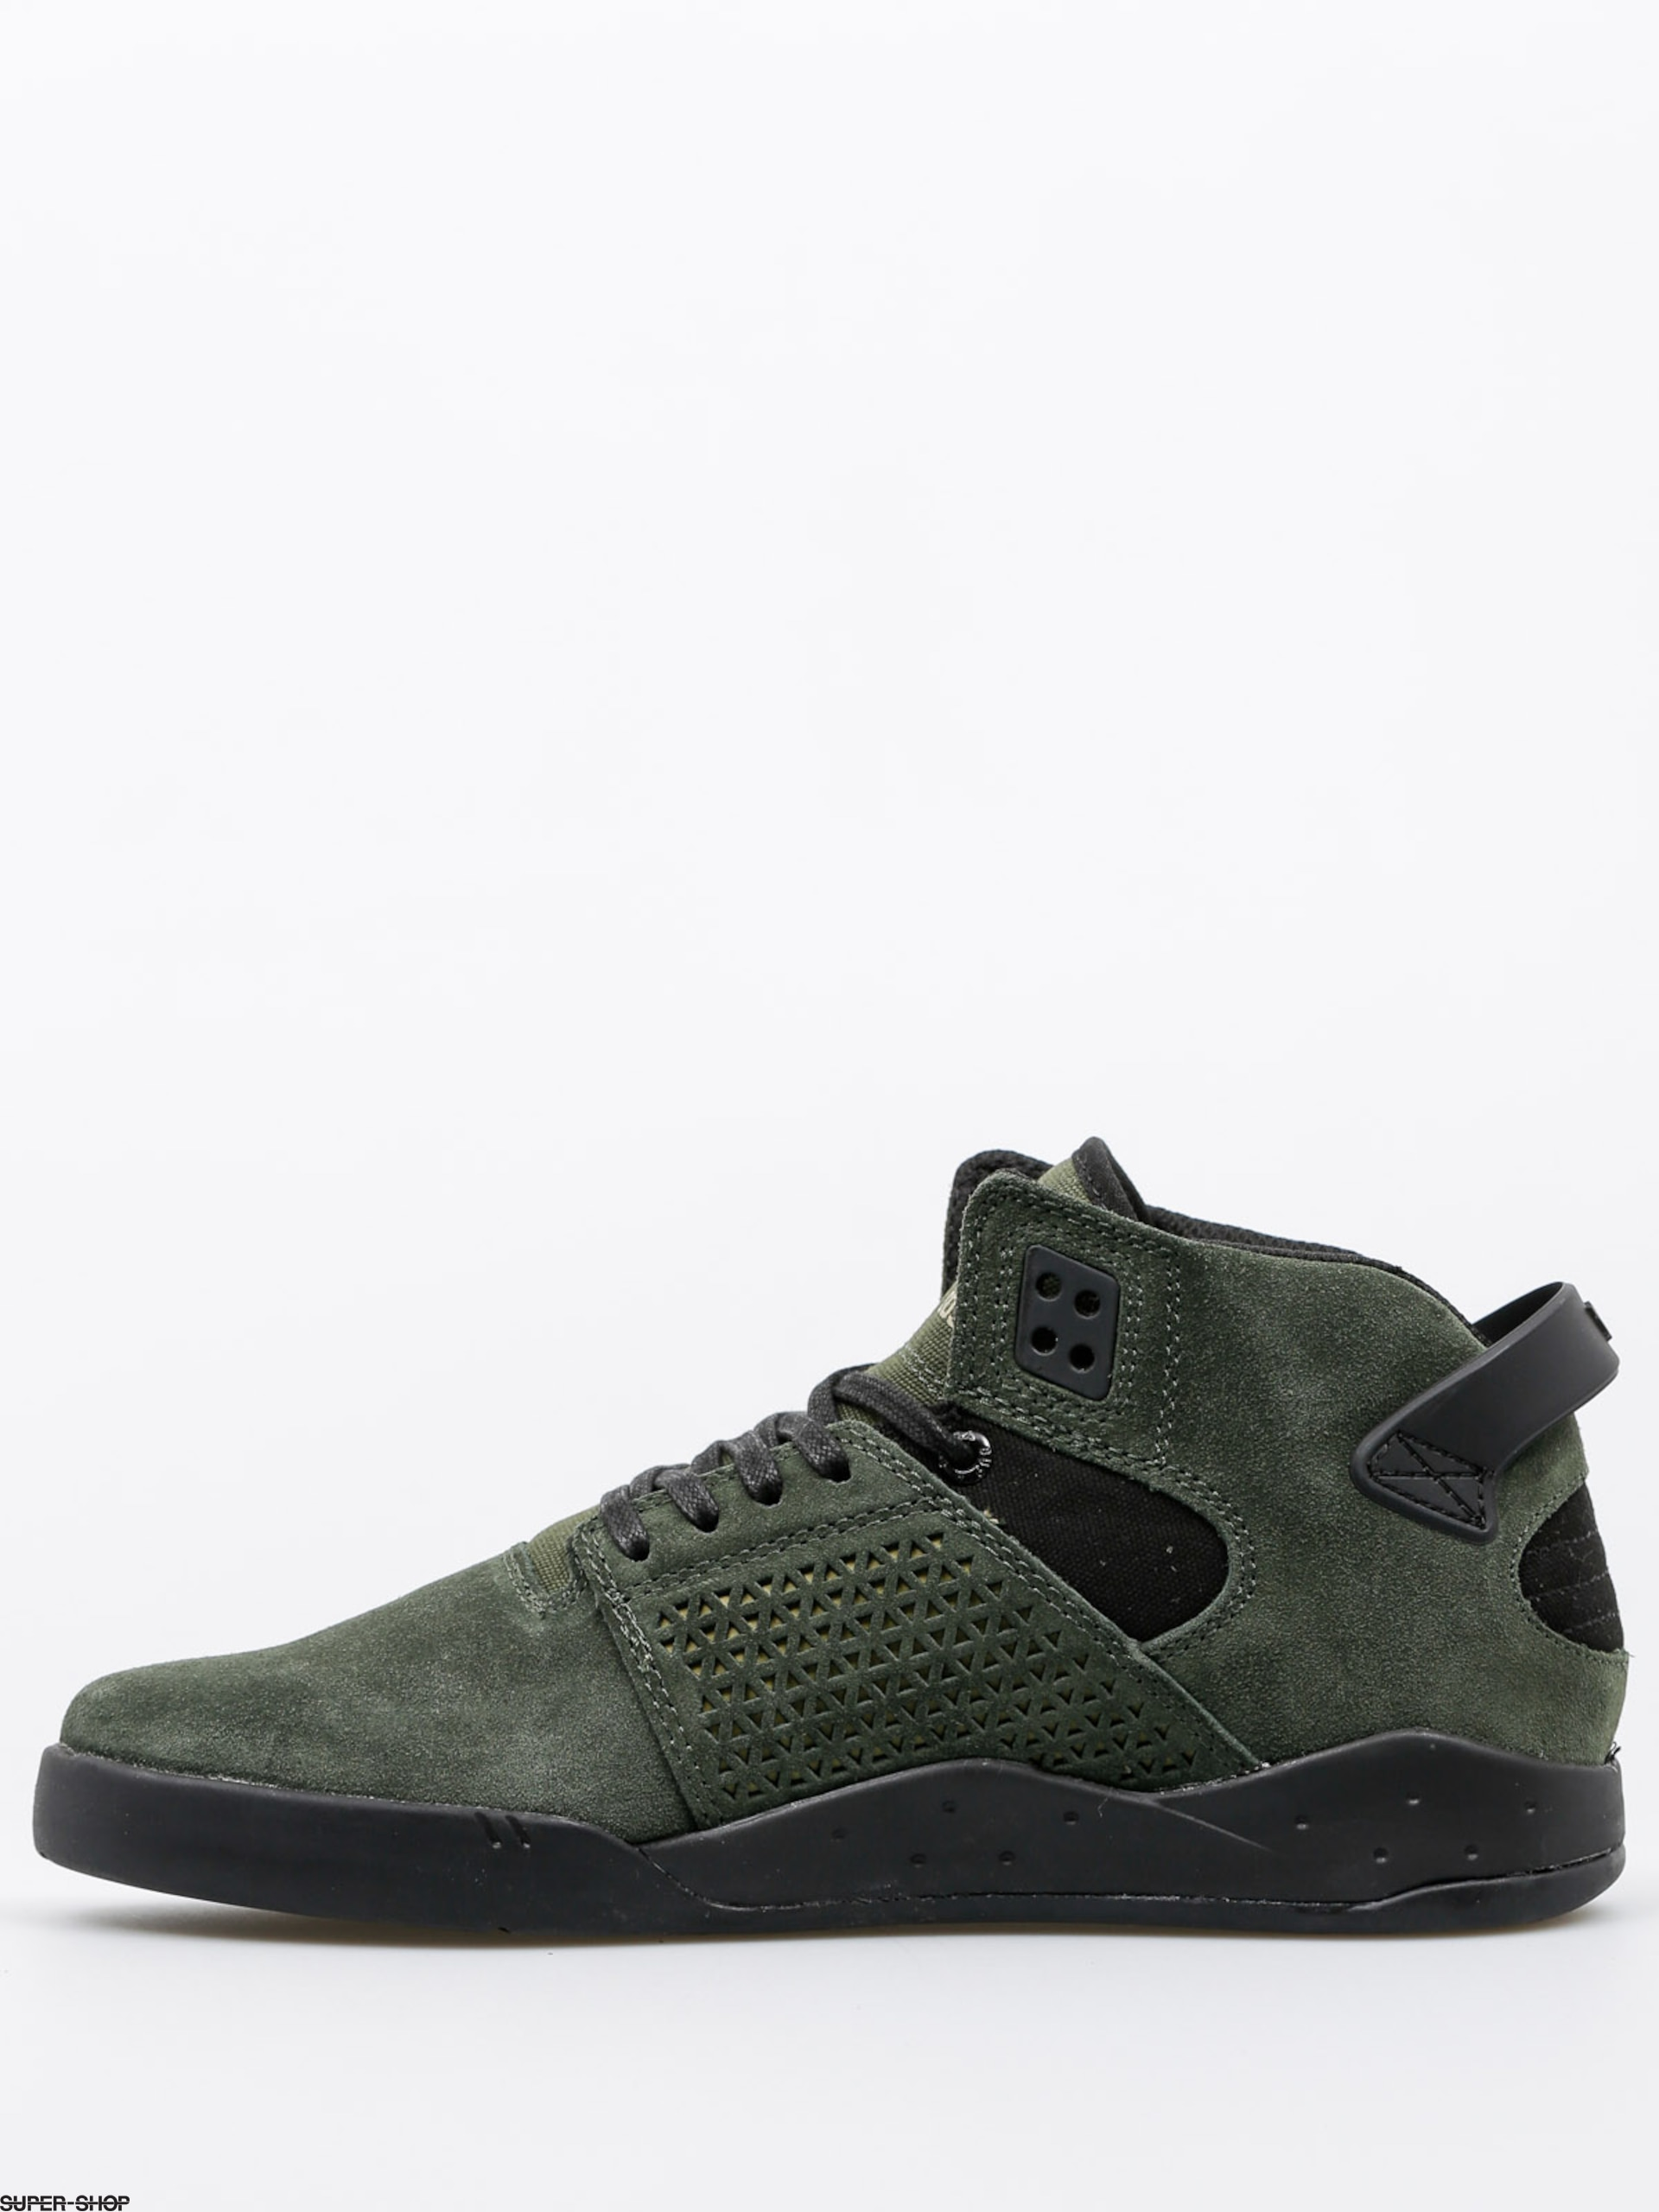 087a7dd21600 Supra Shoes Skytop III (dark olive black black)